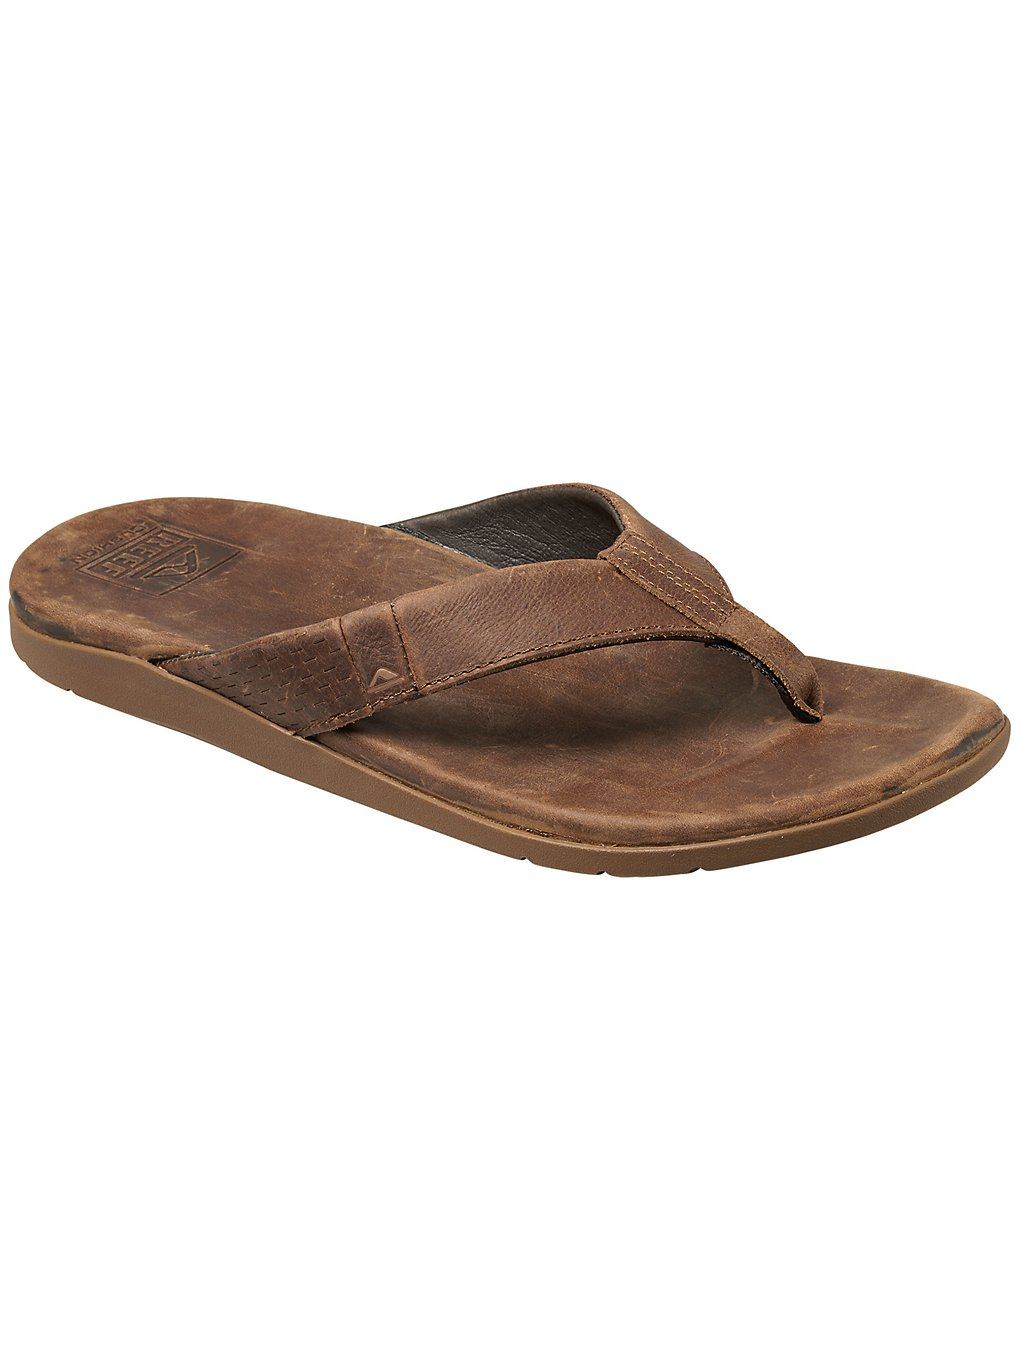 Reef Cushion J-Bay Sandals